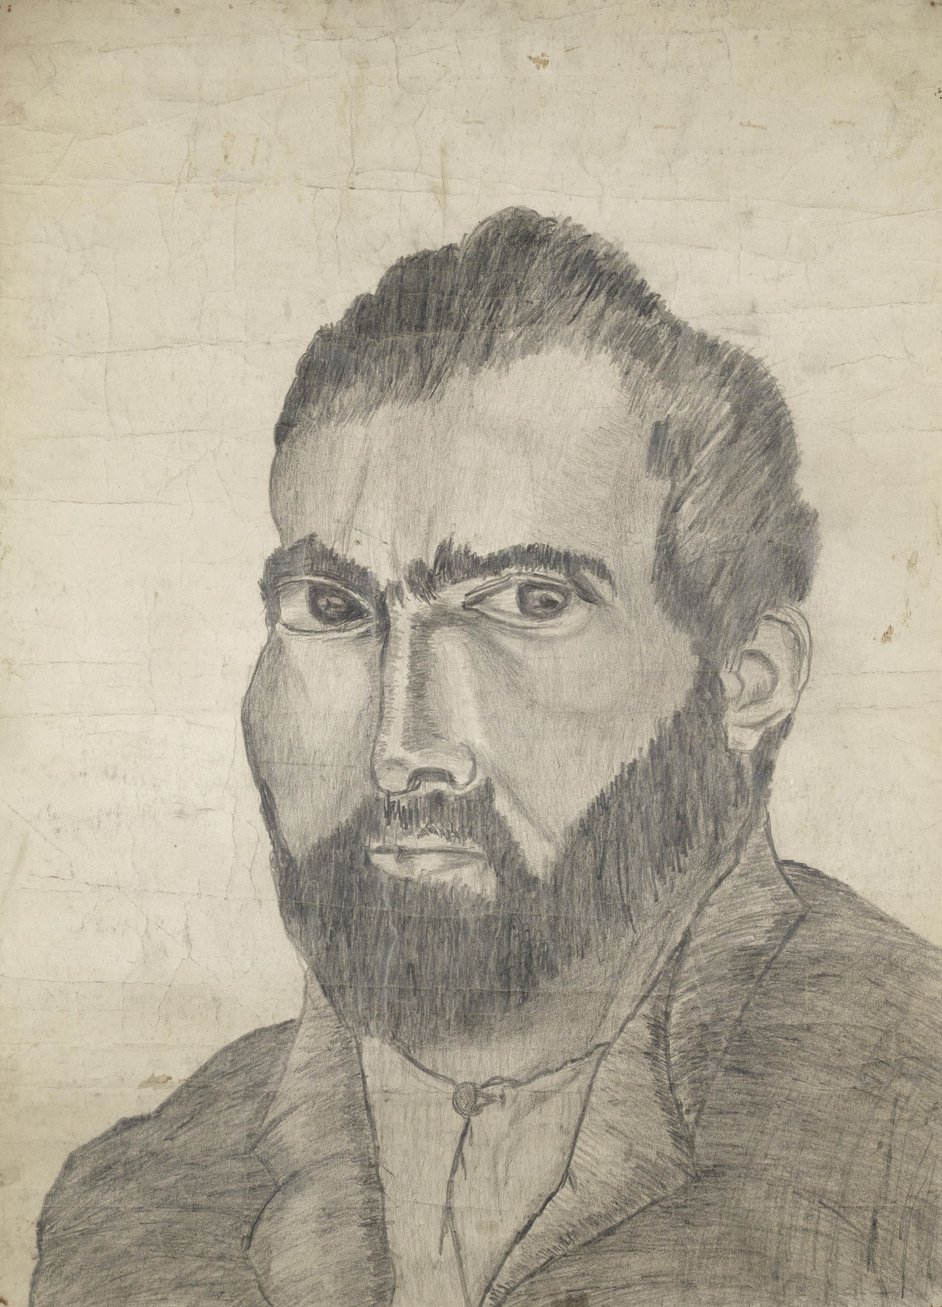 This collection contains artwork including a pencil drawing which is believed to be a self-portrait